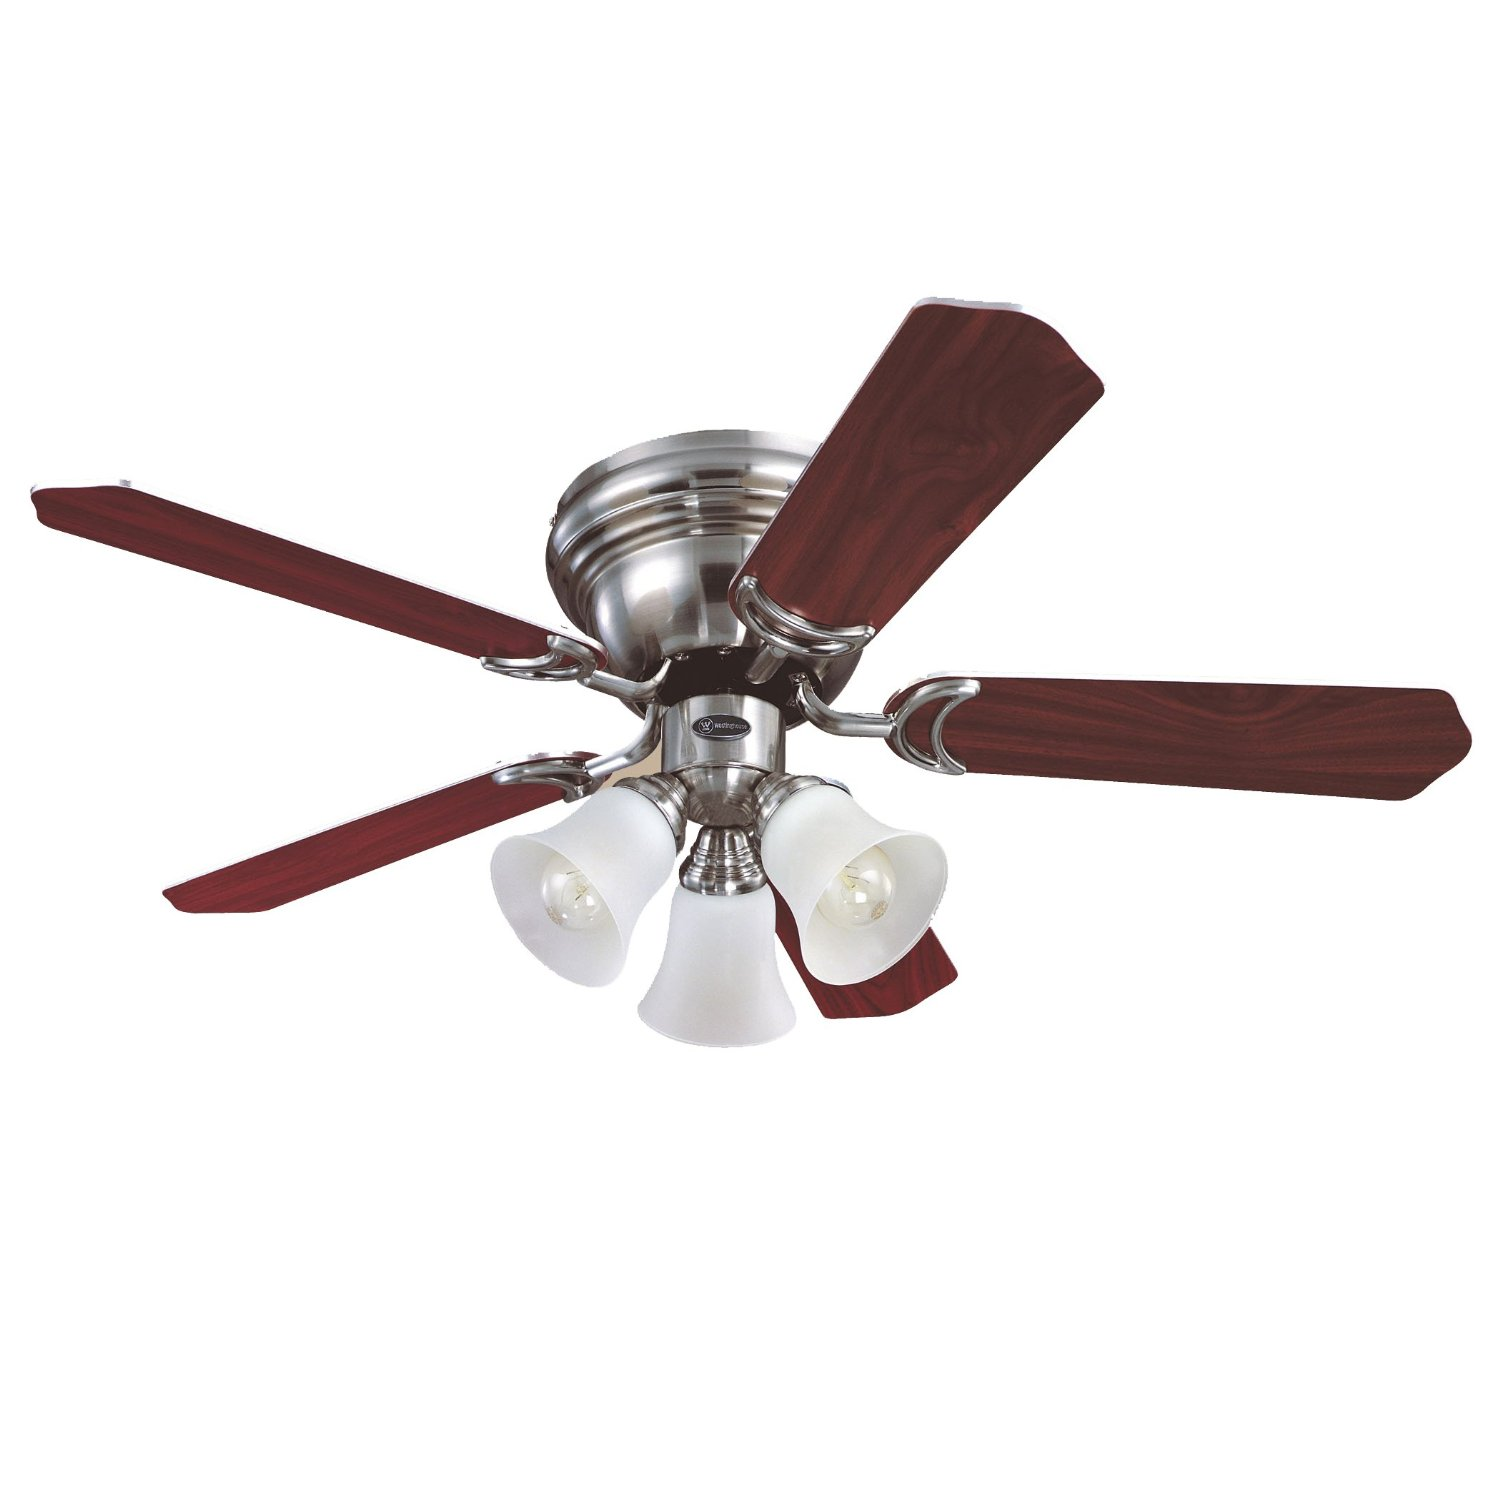 Ceiling Fans With Lights : Getting all lighting convinience with hunter lights and